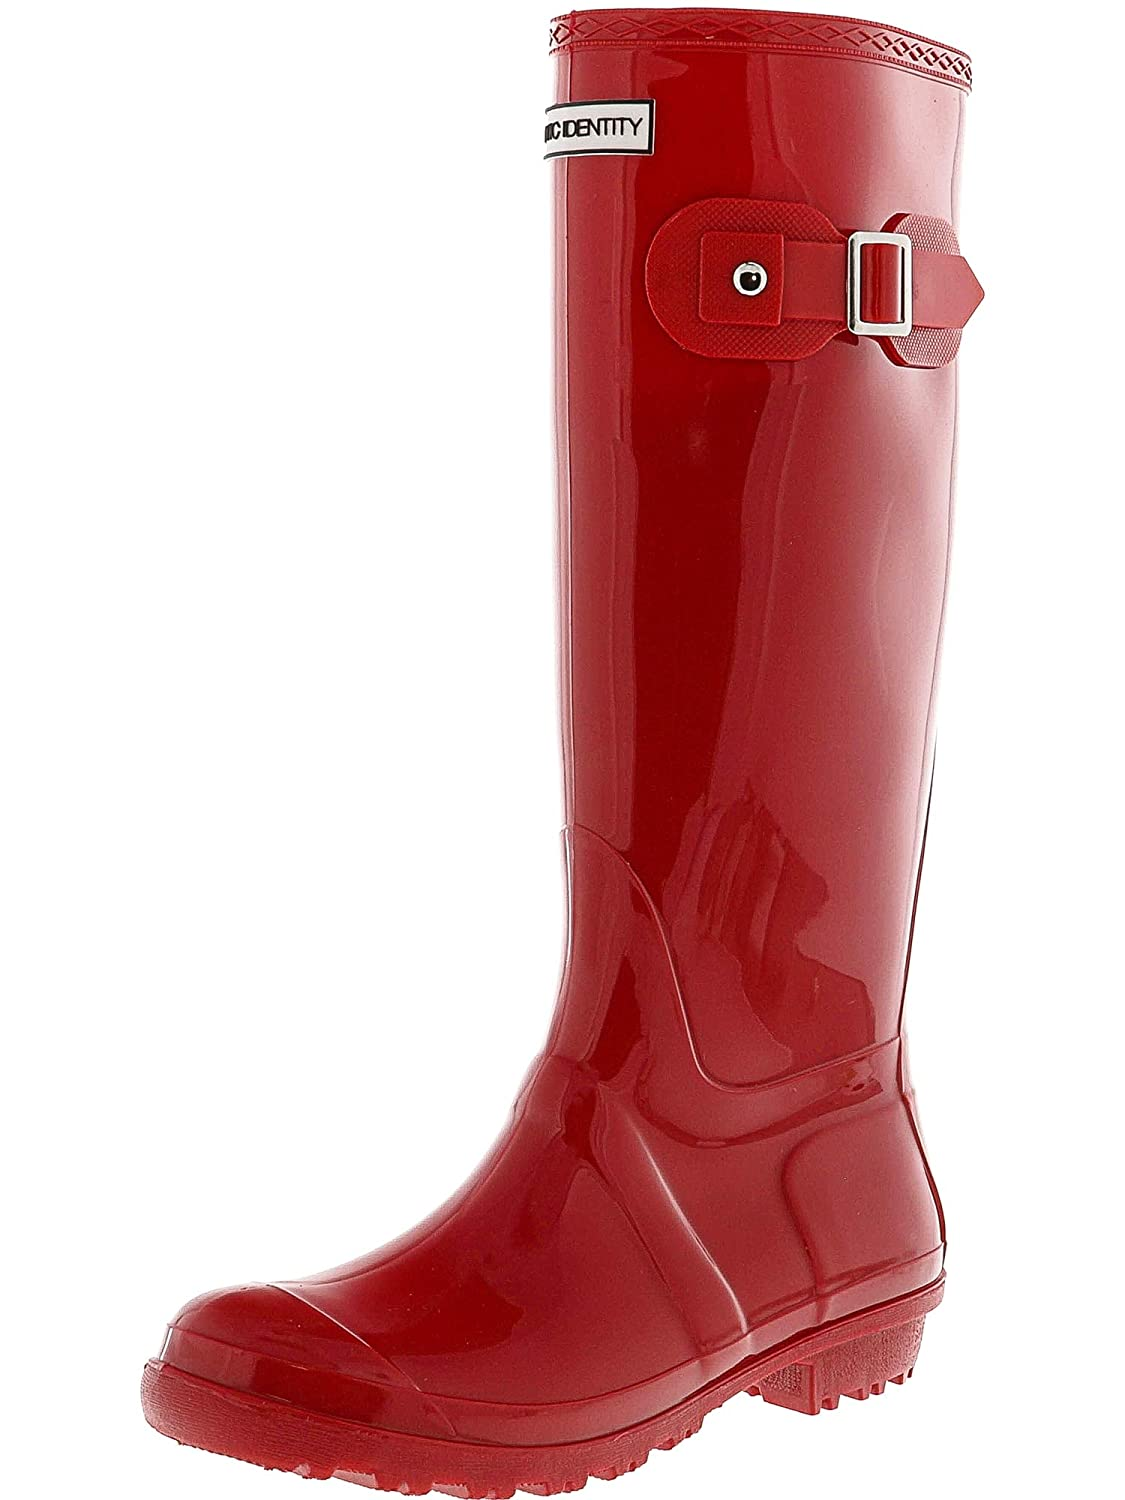 Gloss Red Exotic Identity Original Tall Rain Boots